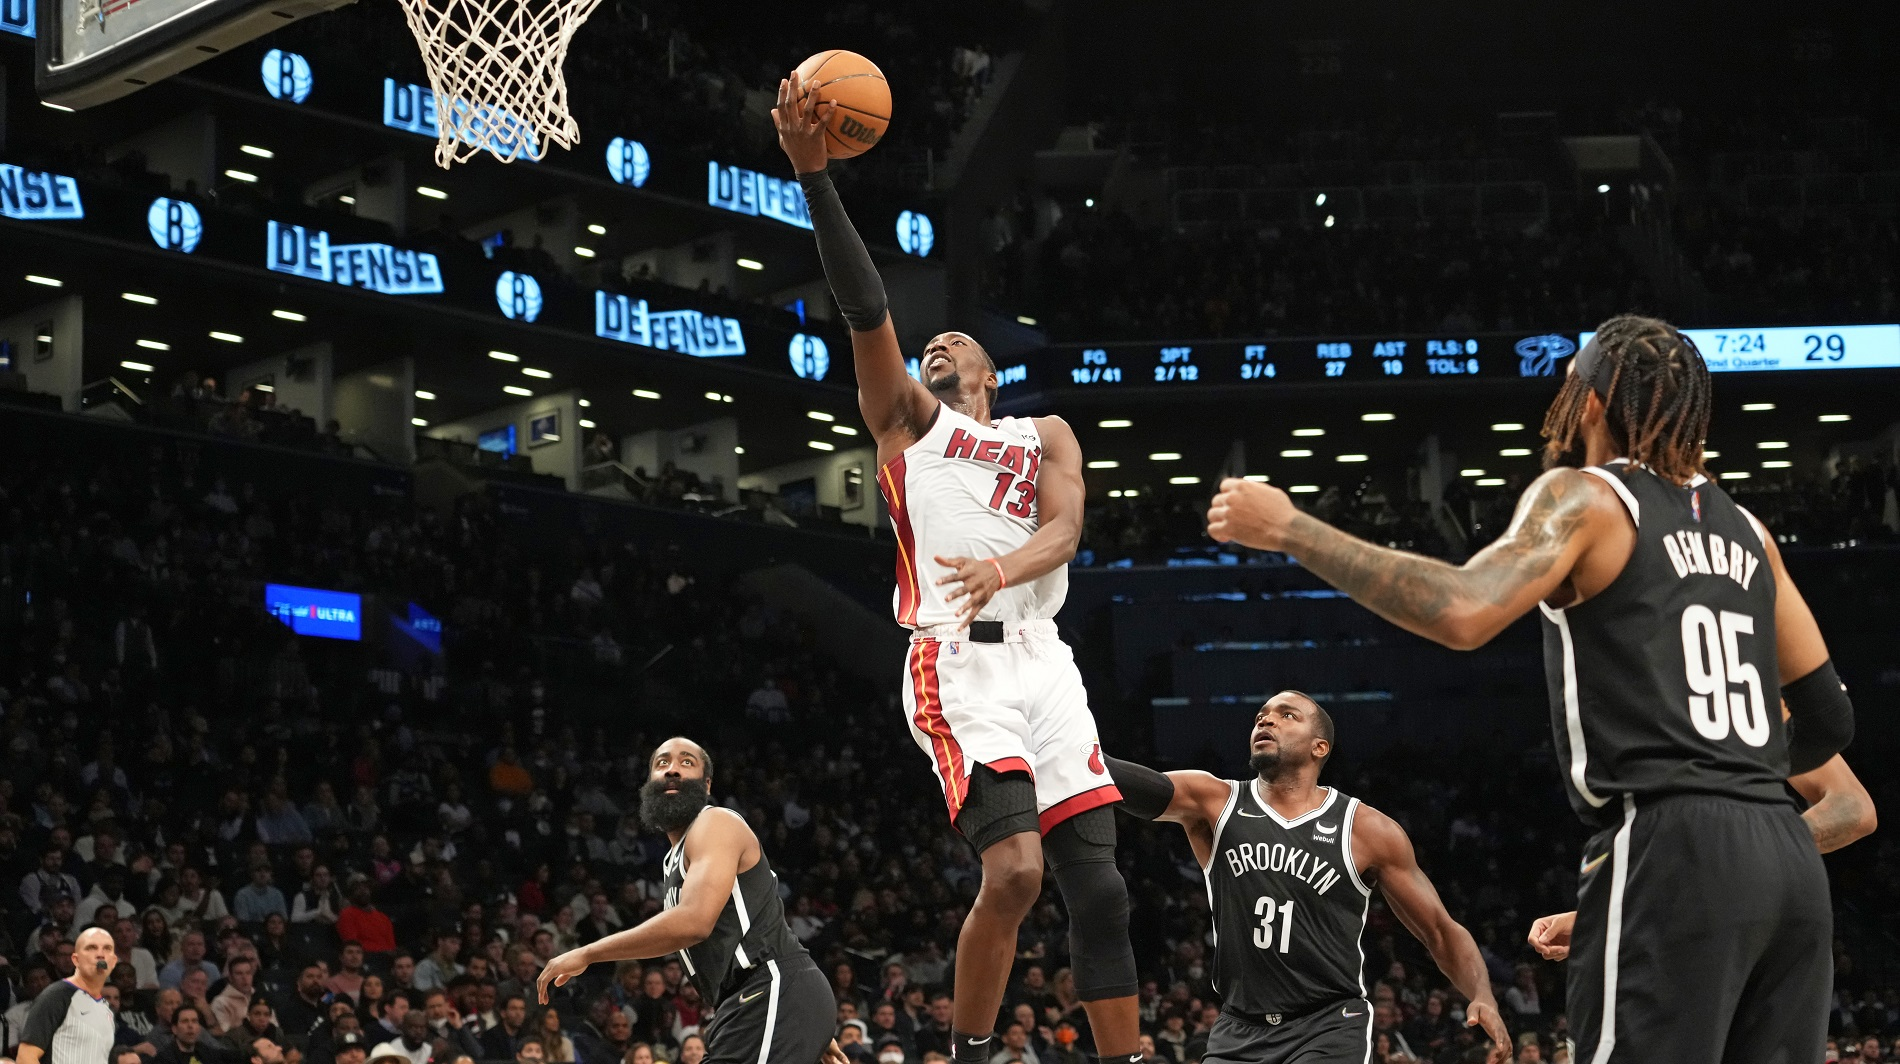 Heat surge away from Nets in 4th quarter